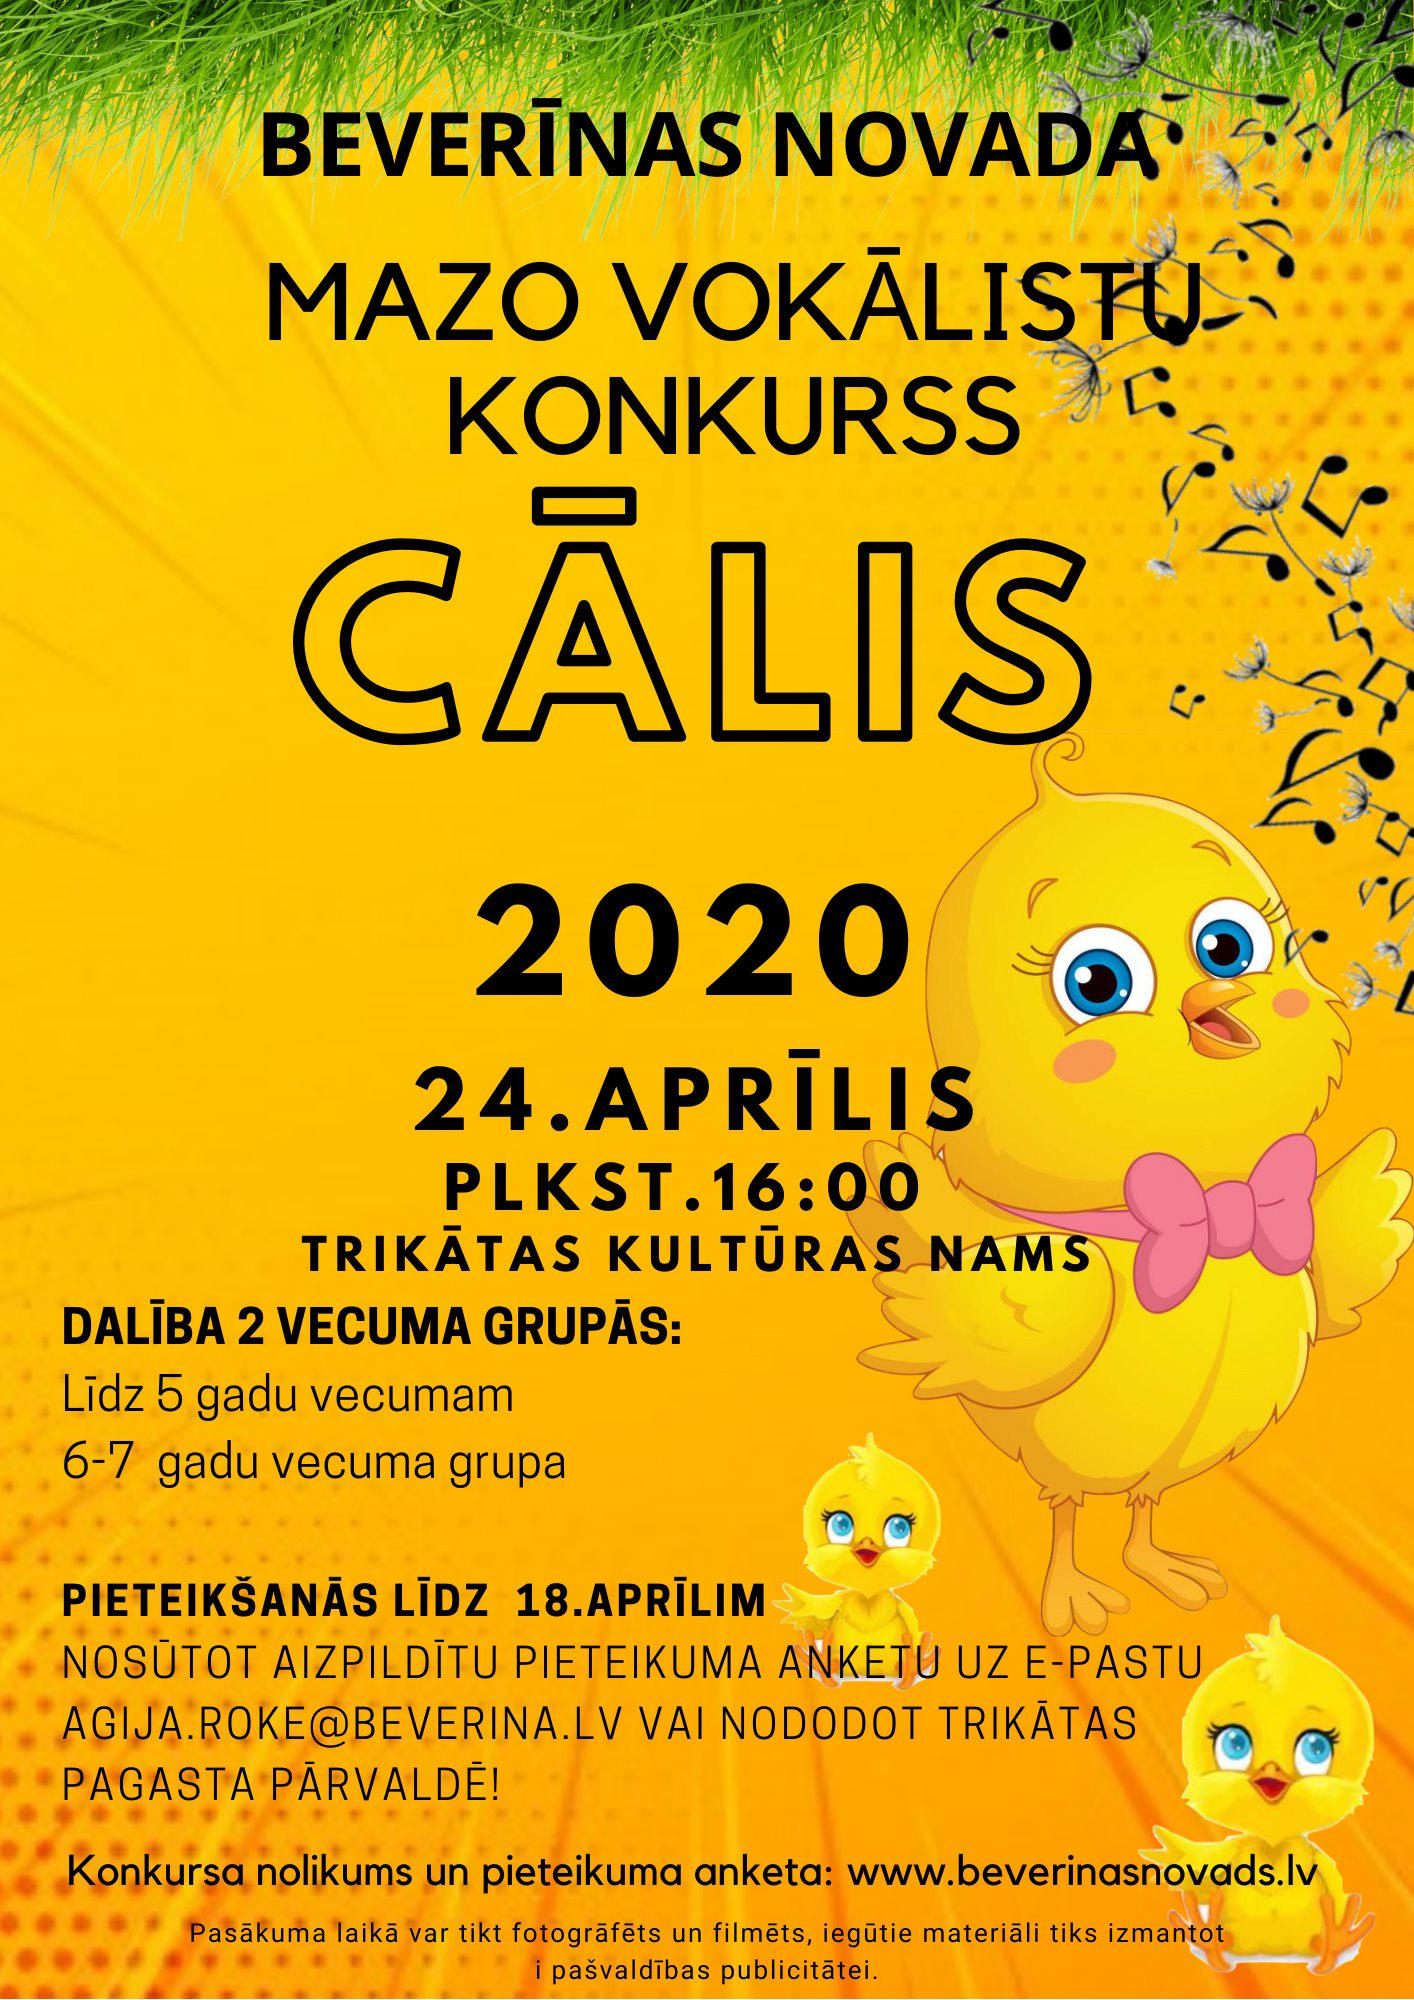 Calis2020 ml 24apr